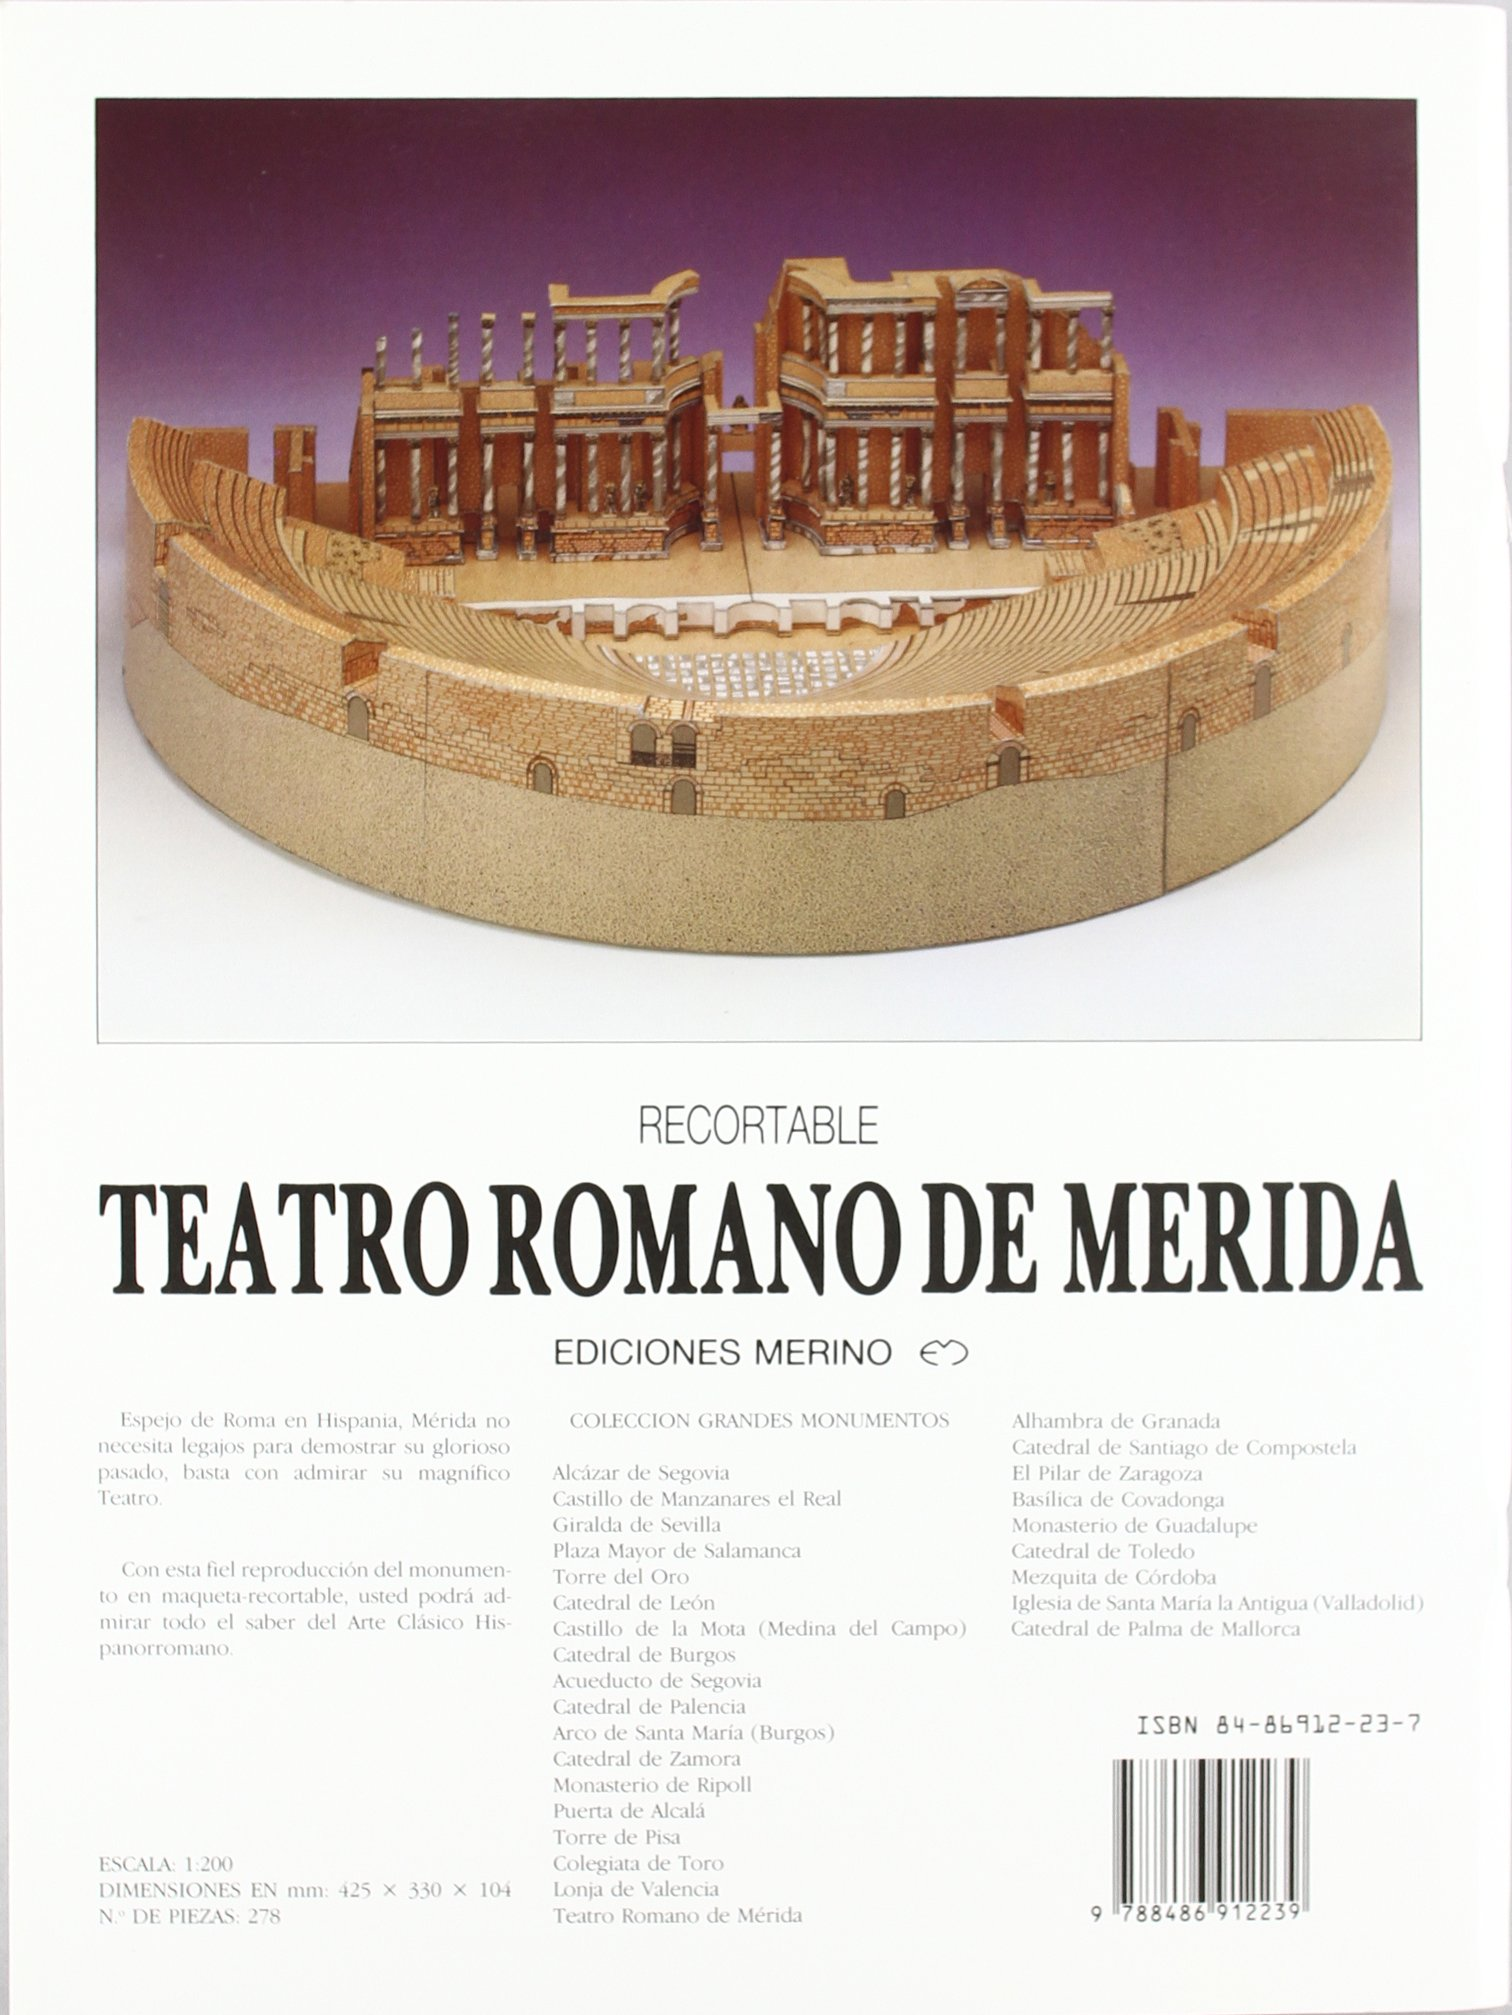 Teatro Romano De Merida: 9788486912239: Amazon.com: Books